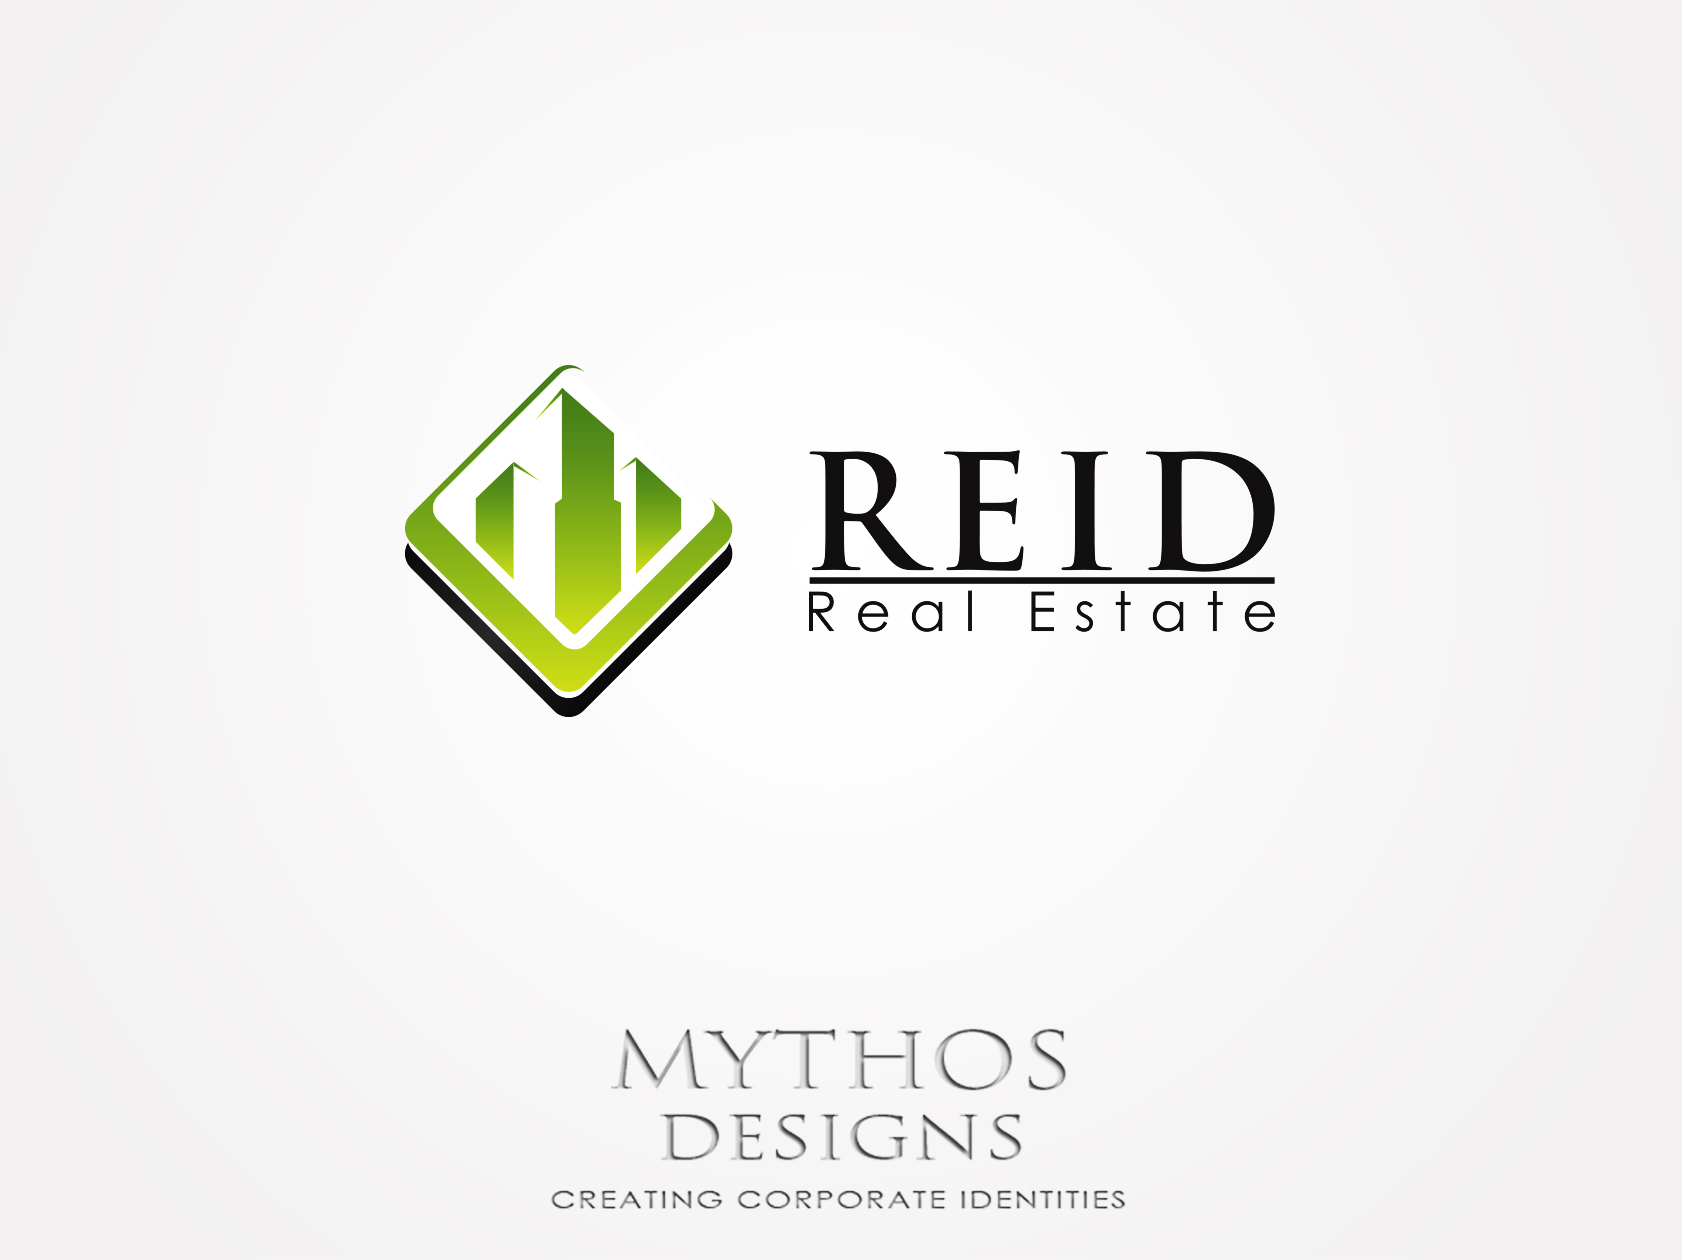 Logo Design by Mythos Designs - Entry No. 13 in the Logo Design Contest Artistic Logo Design for Hadden Properties.